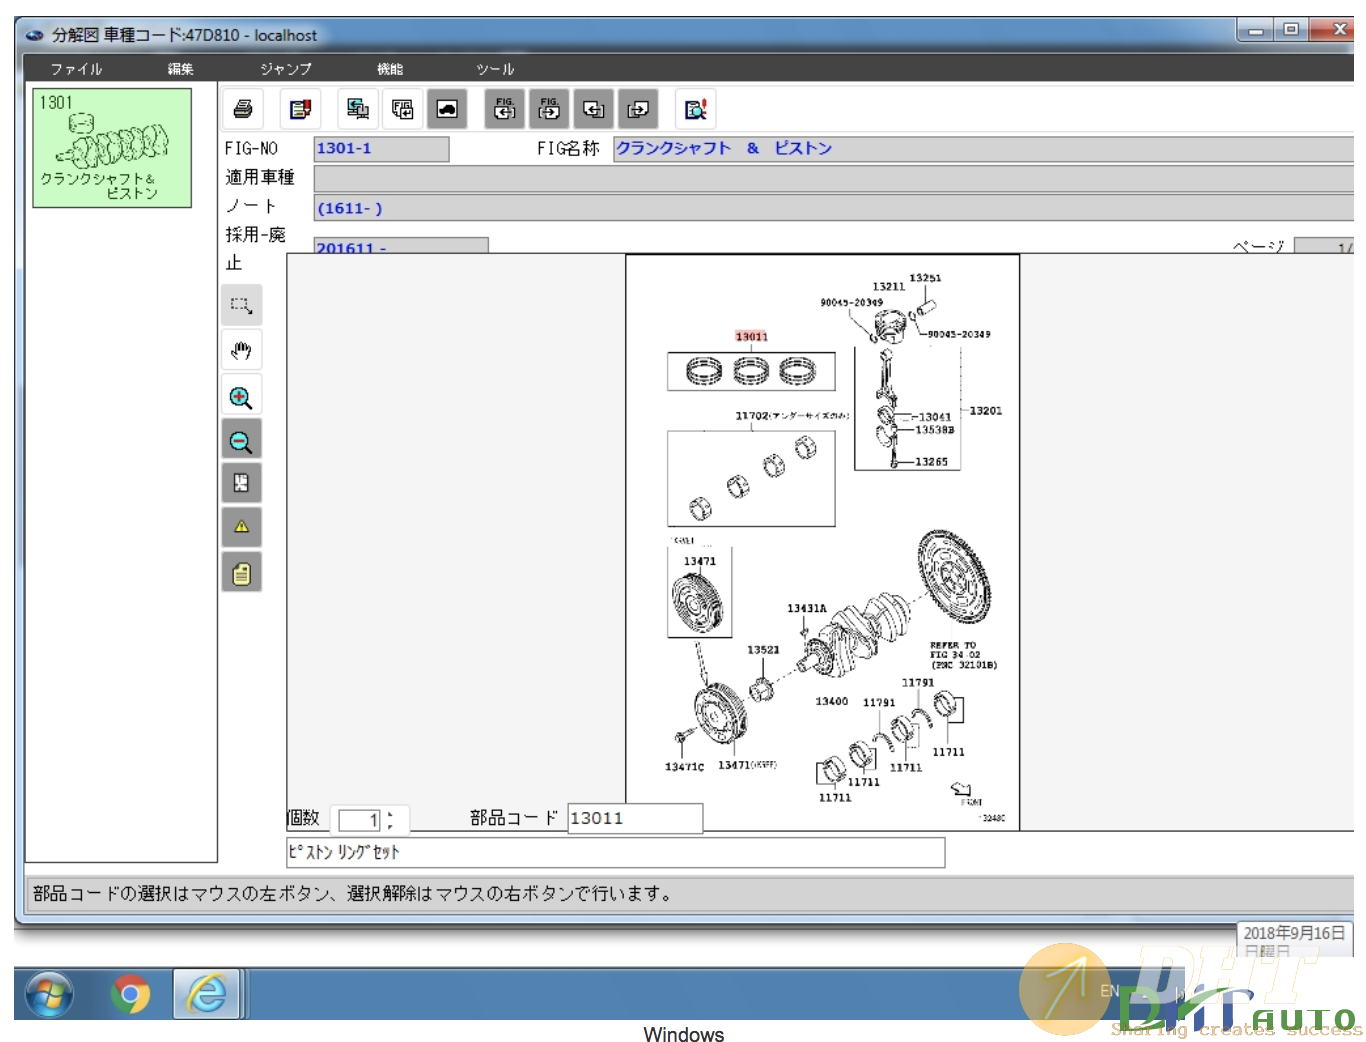 Subaru-Japan-EPC3-Full-Instruction-04-2018-5.png